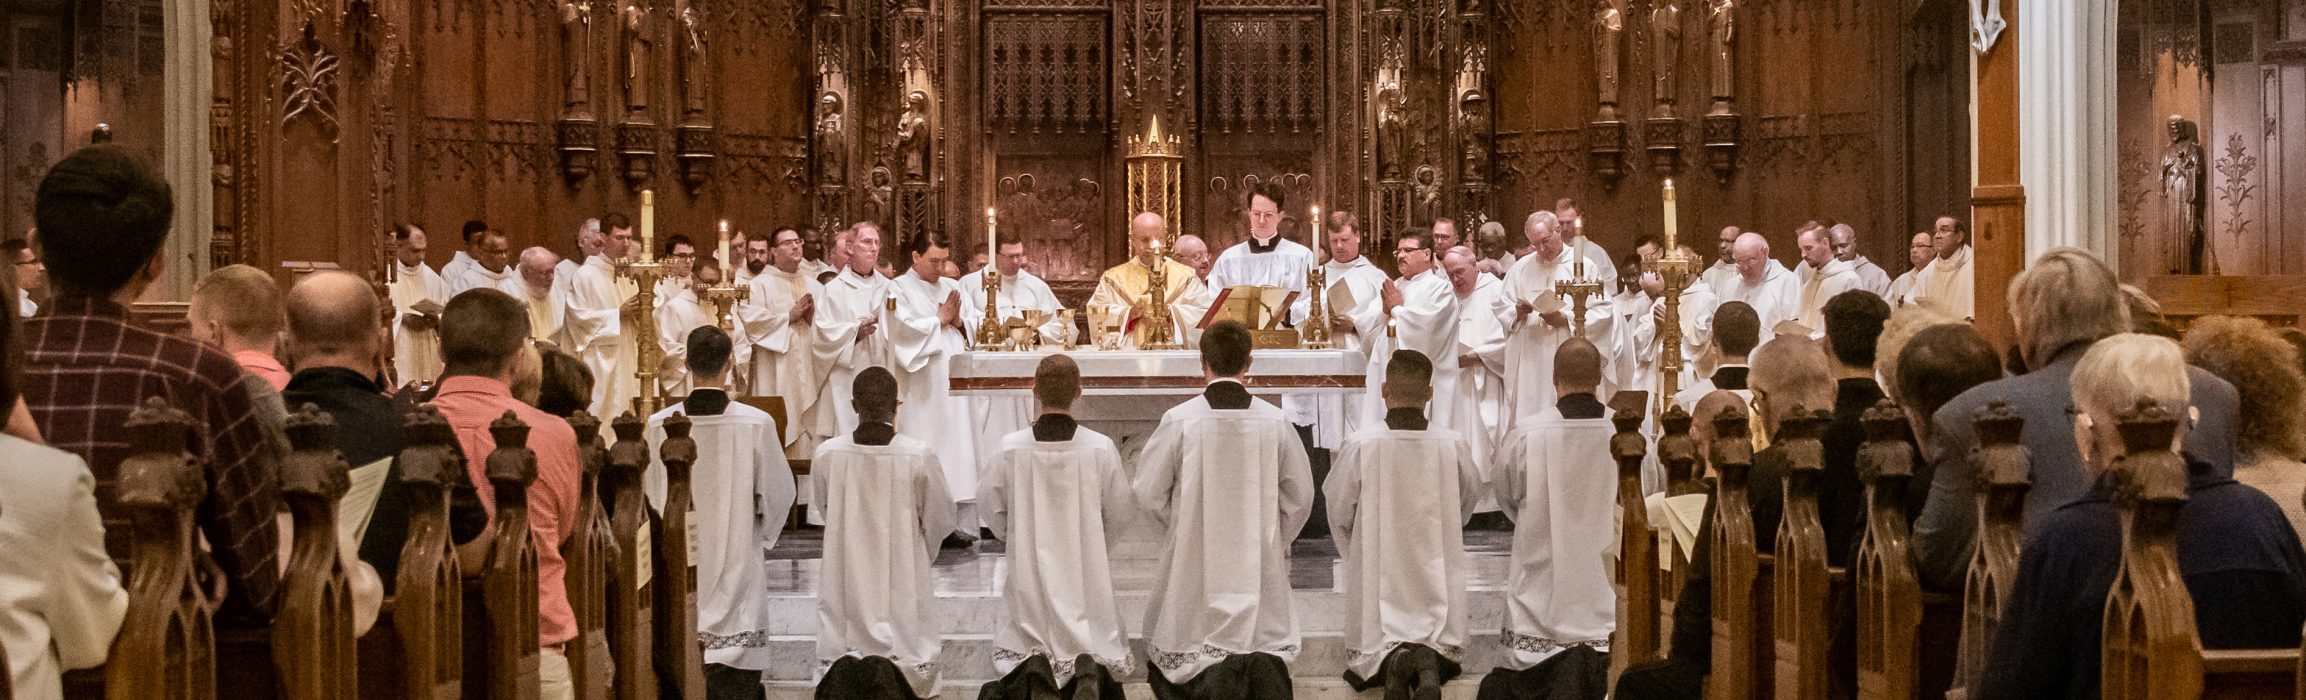 Holy oils blessed, consecrated at Chrism Masses - Today's Catholic